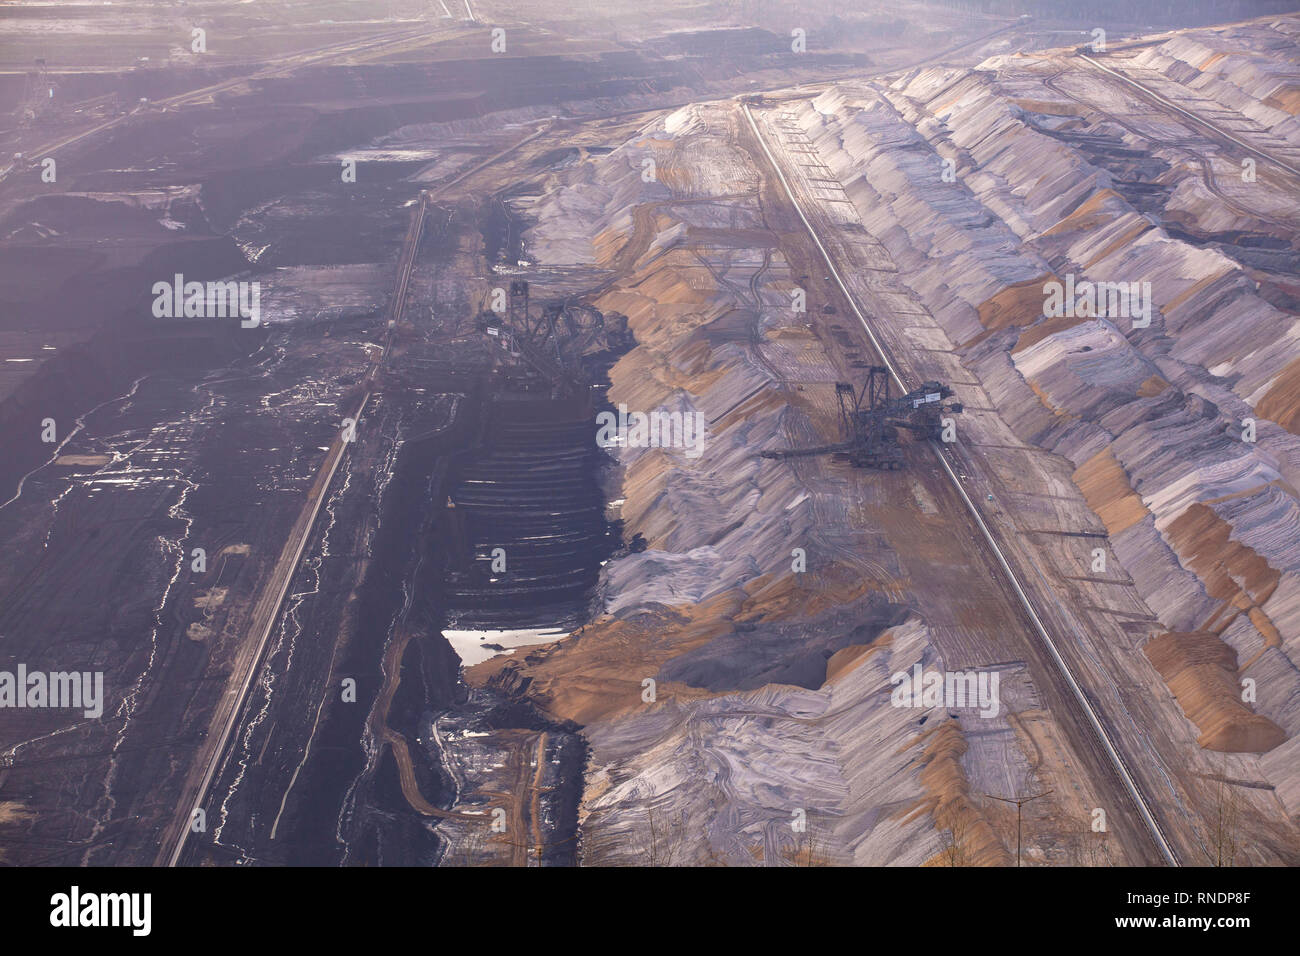 brown coal opencast mining Hambach, operated by RWE Power AG, Germany.  Braunkohletagebau Hambach, Betreiber RWE Power AG, Deutschland. - Stock Image